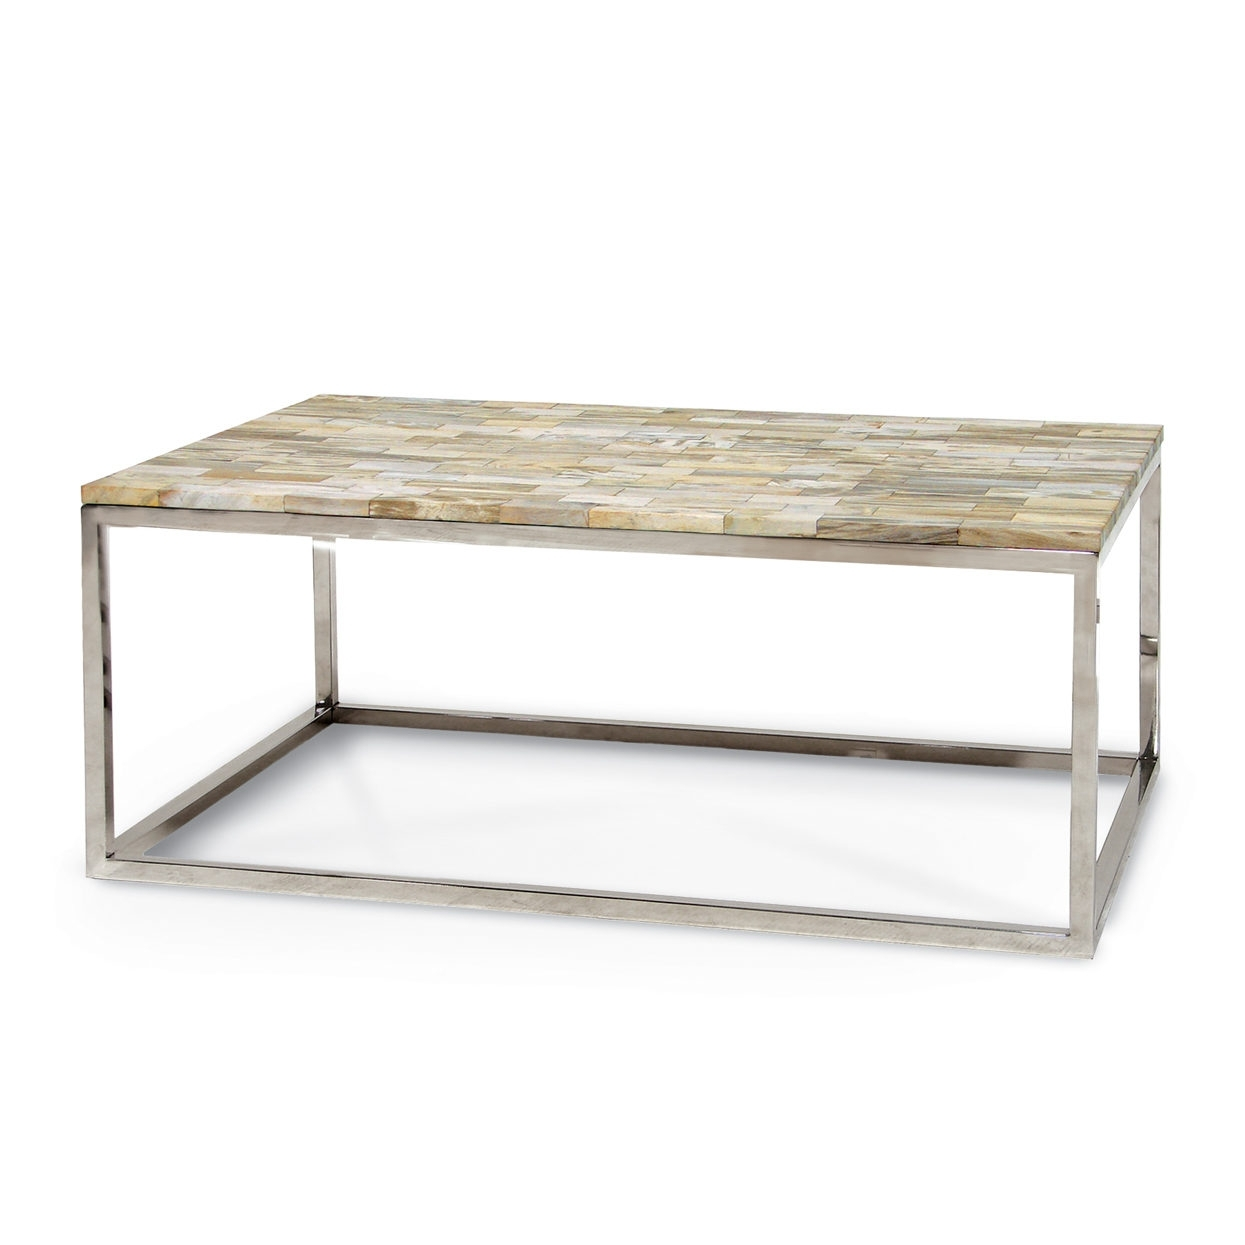 Designer Love – Unique Coffee Table With Shroom Large Coffee Tables (View 9 of 30)